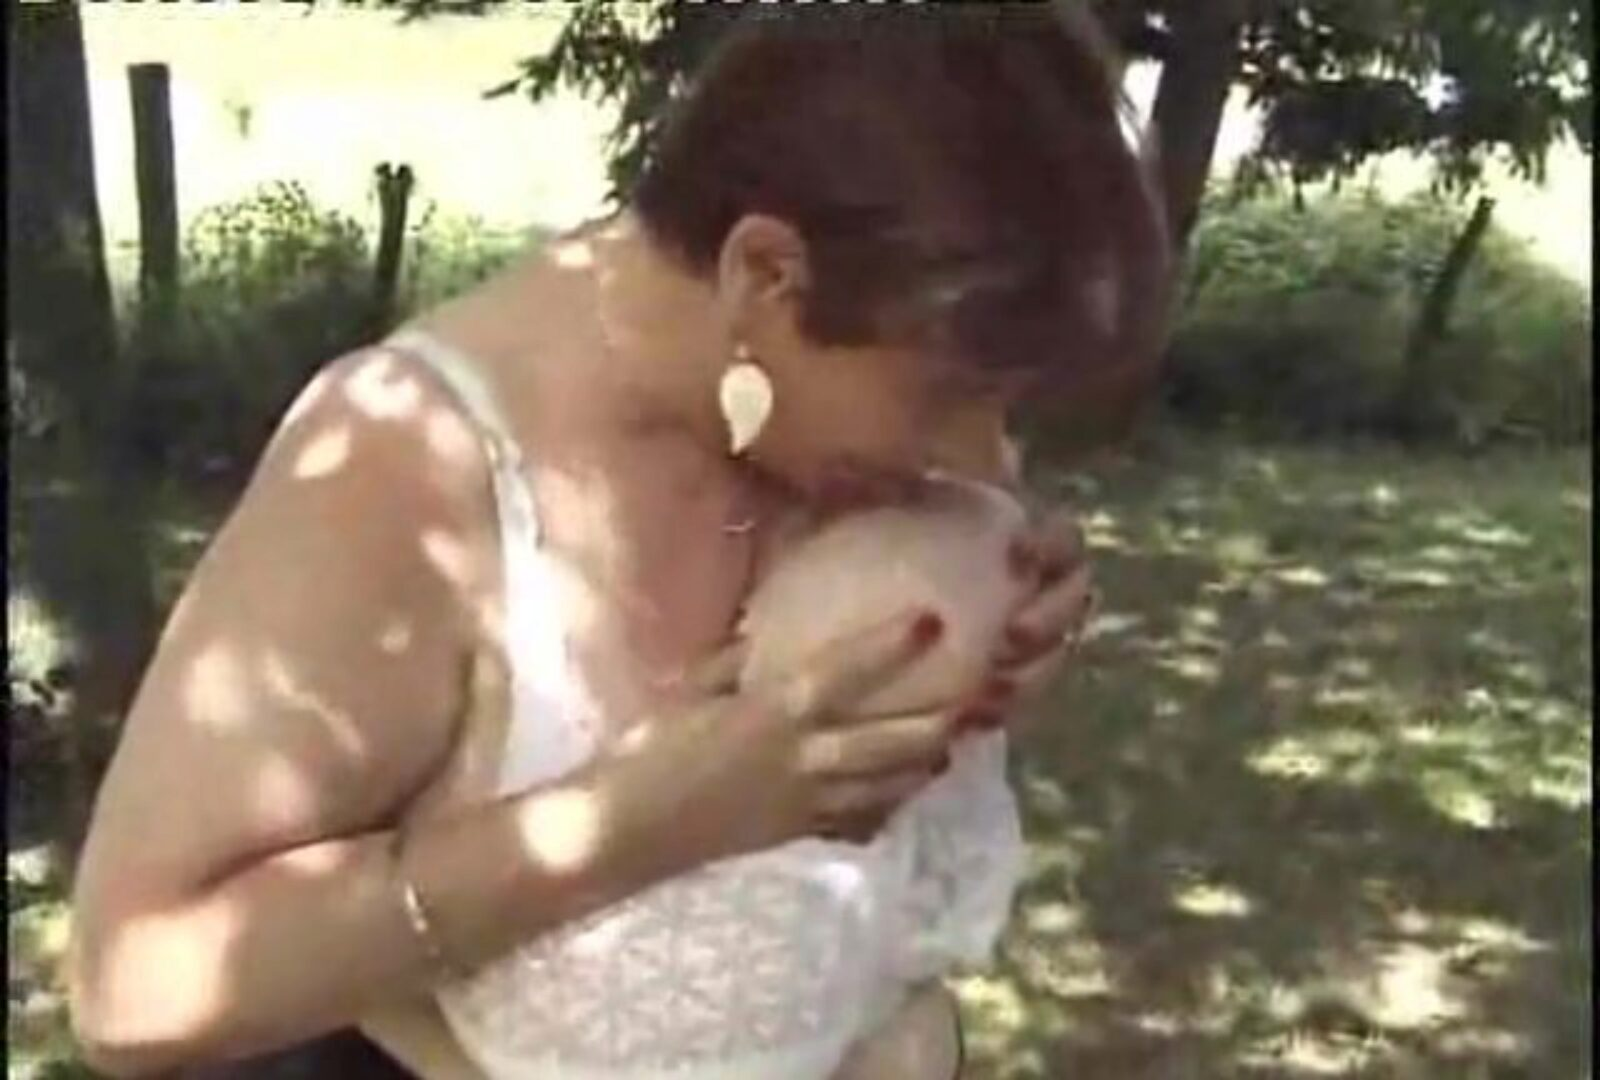 french mature giant mangos olga is an senior slut grandmother with noticable features